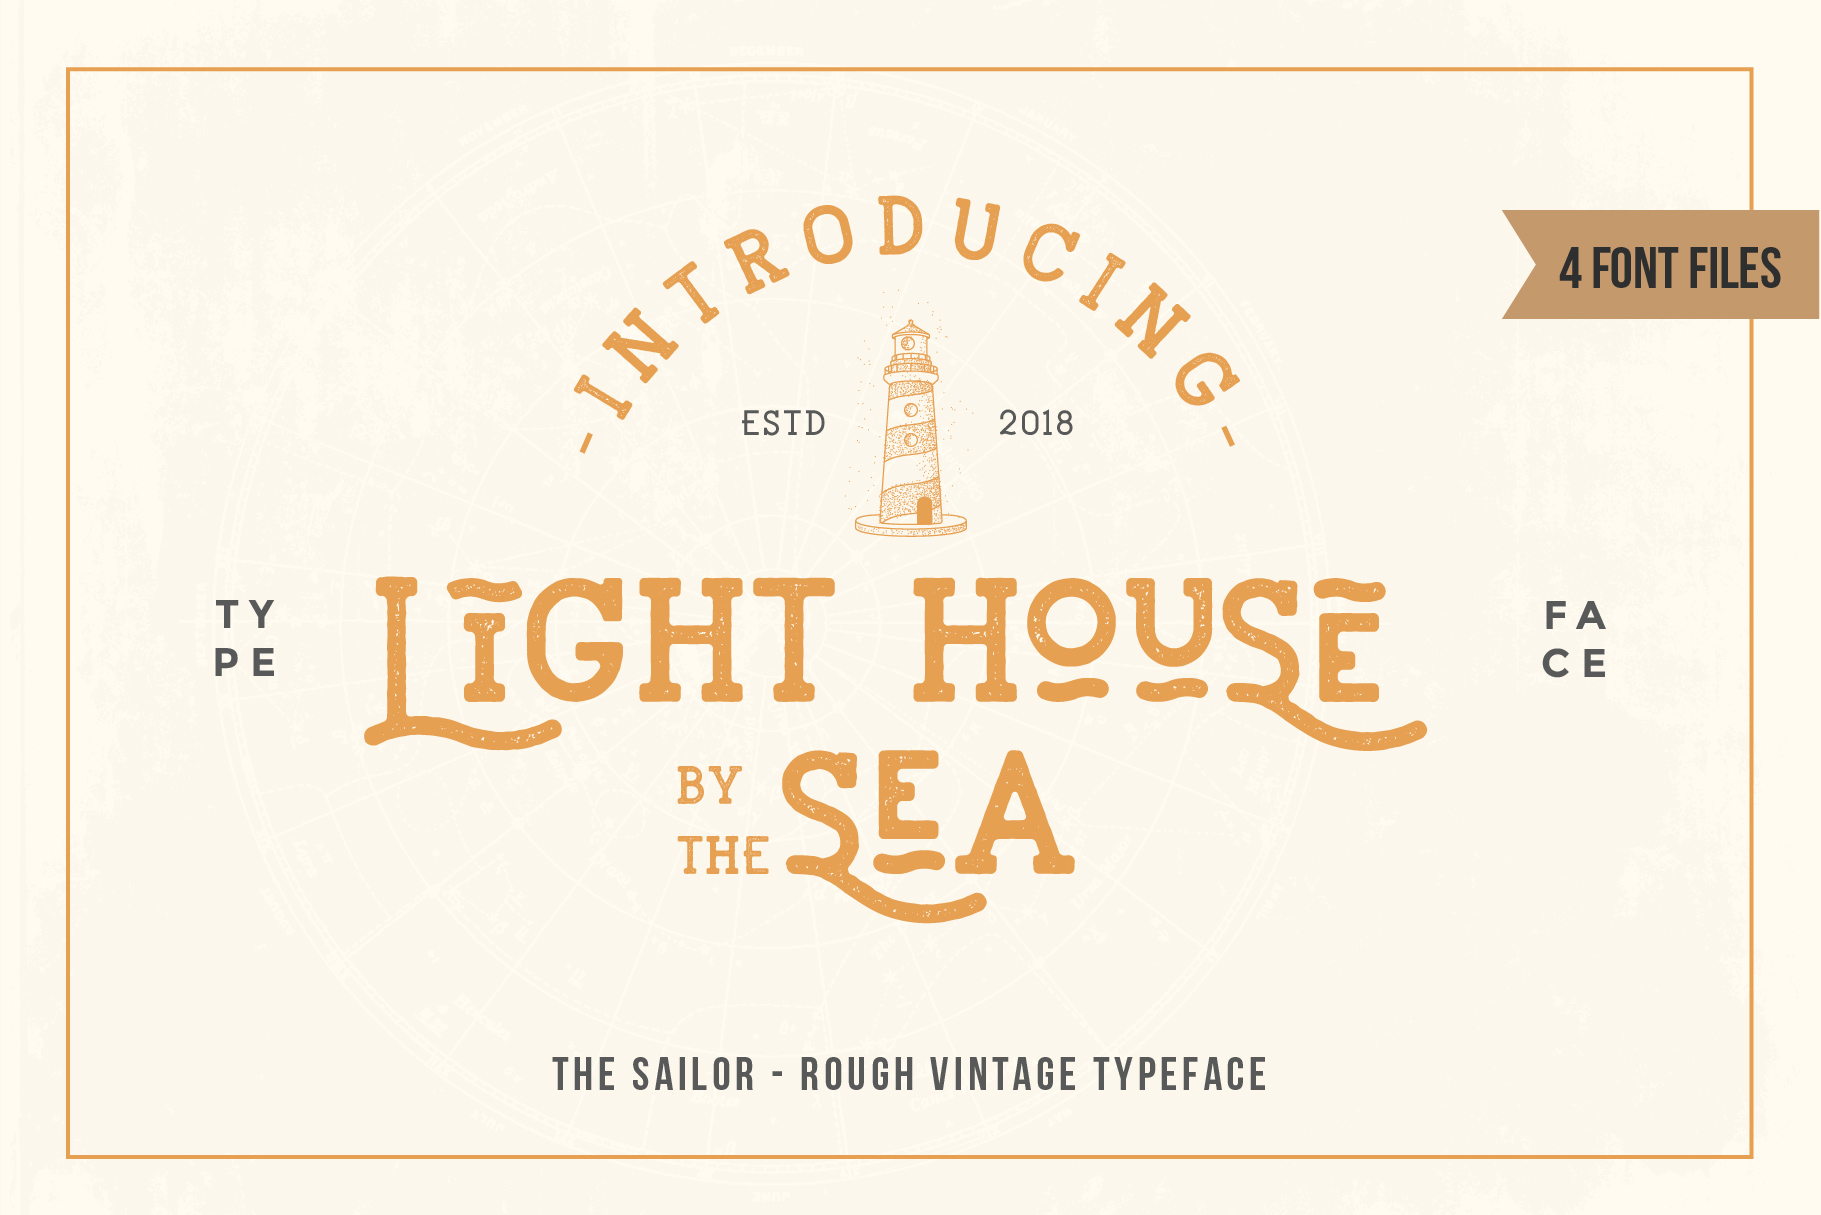 LightHouse - Vintage Sailor Rough Typeface example image 2